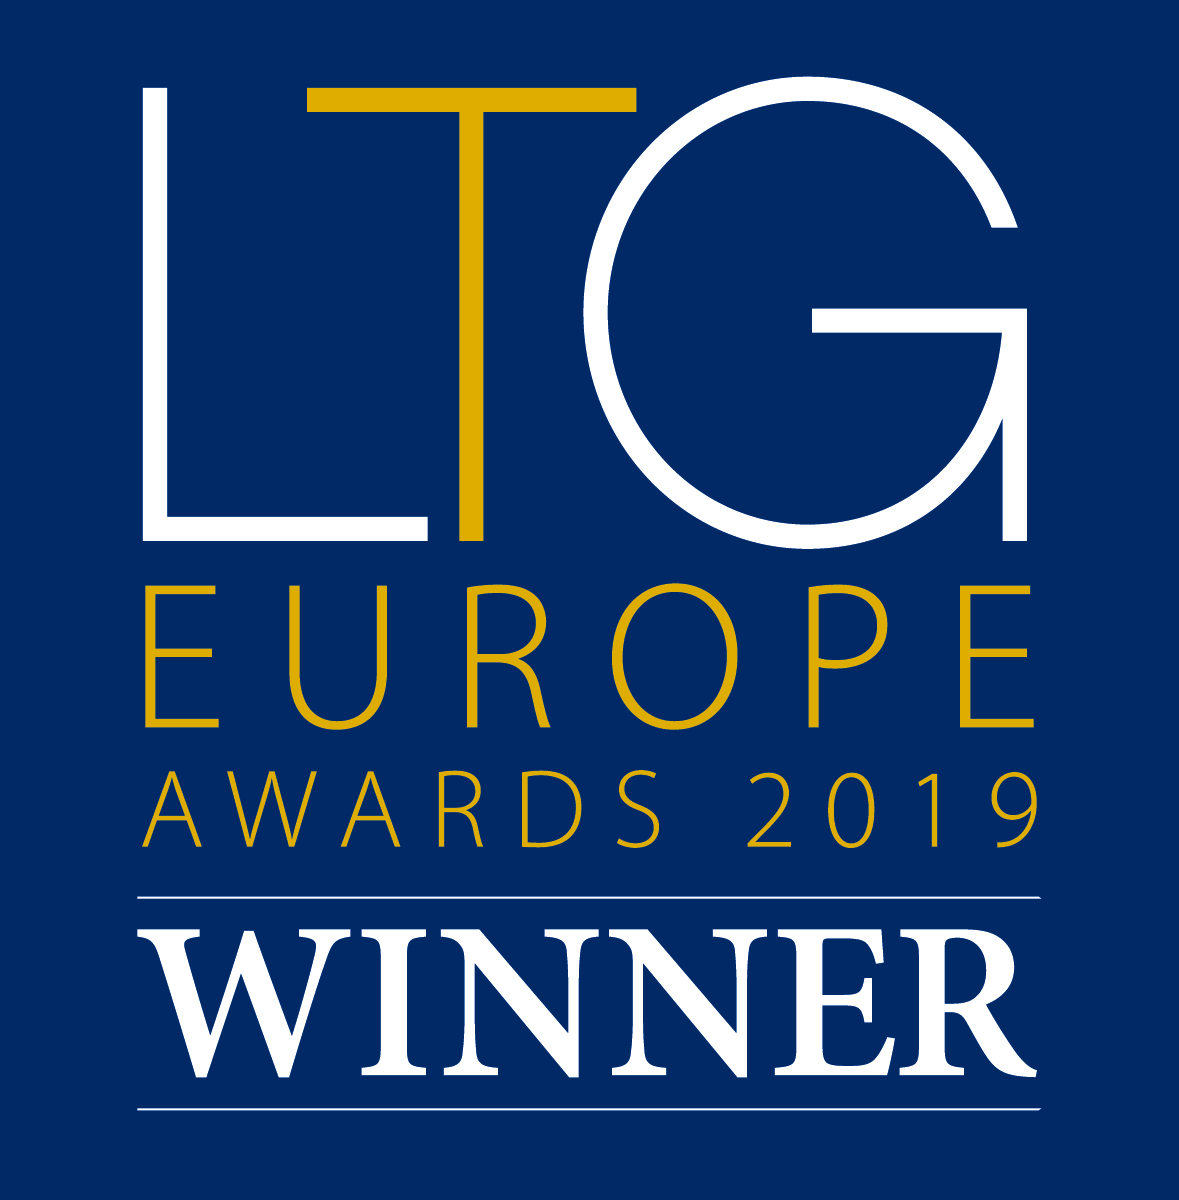 LTG-europre-awards-winner-2019